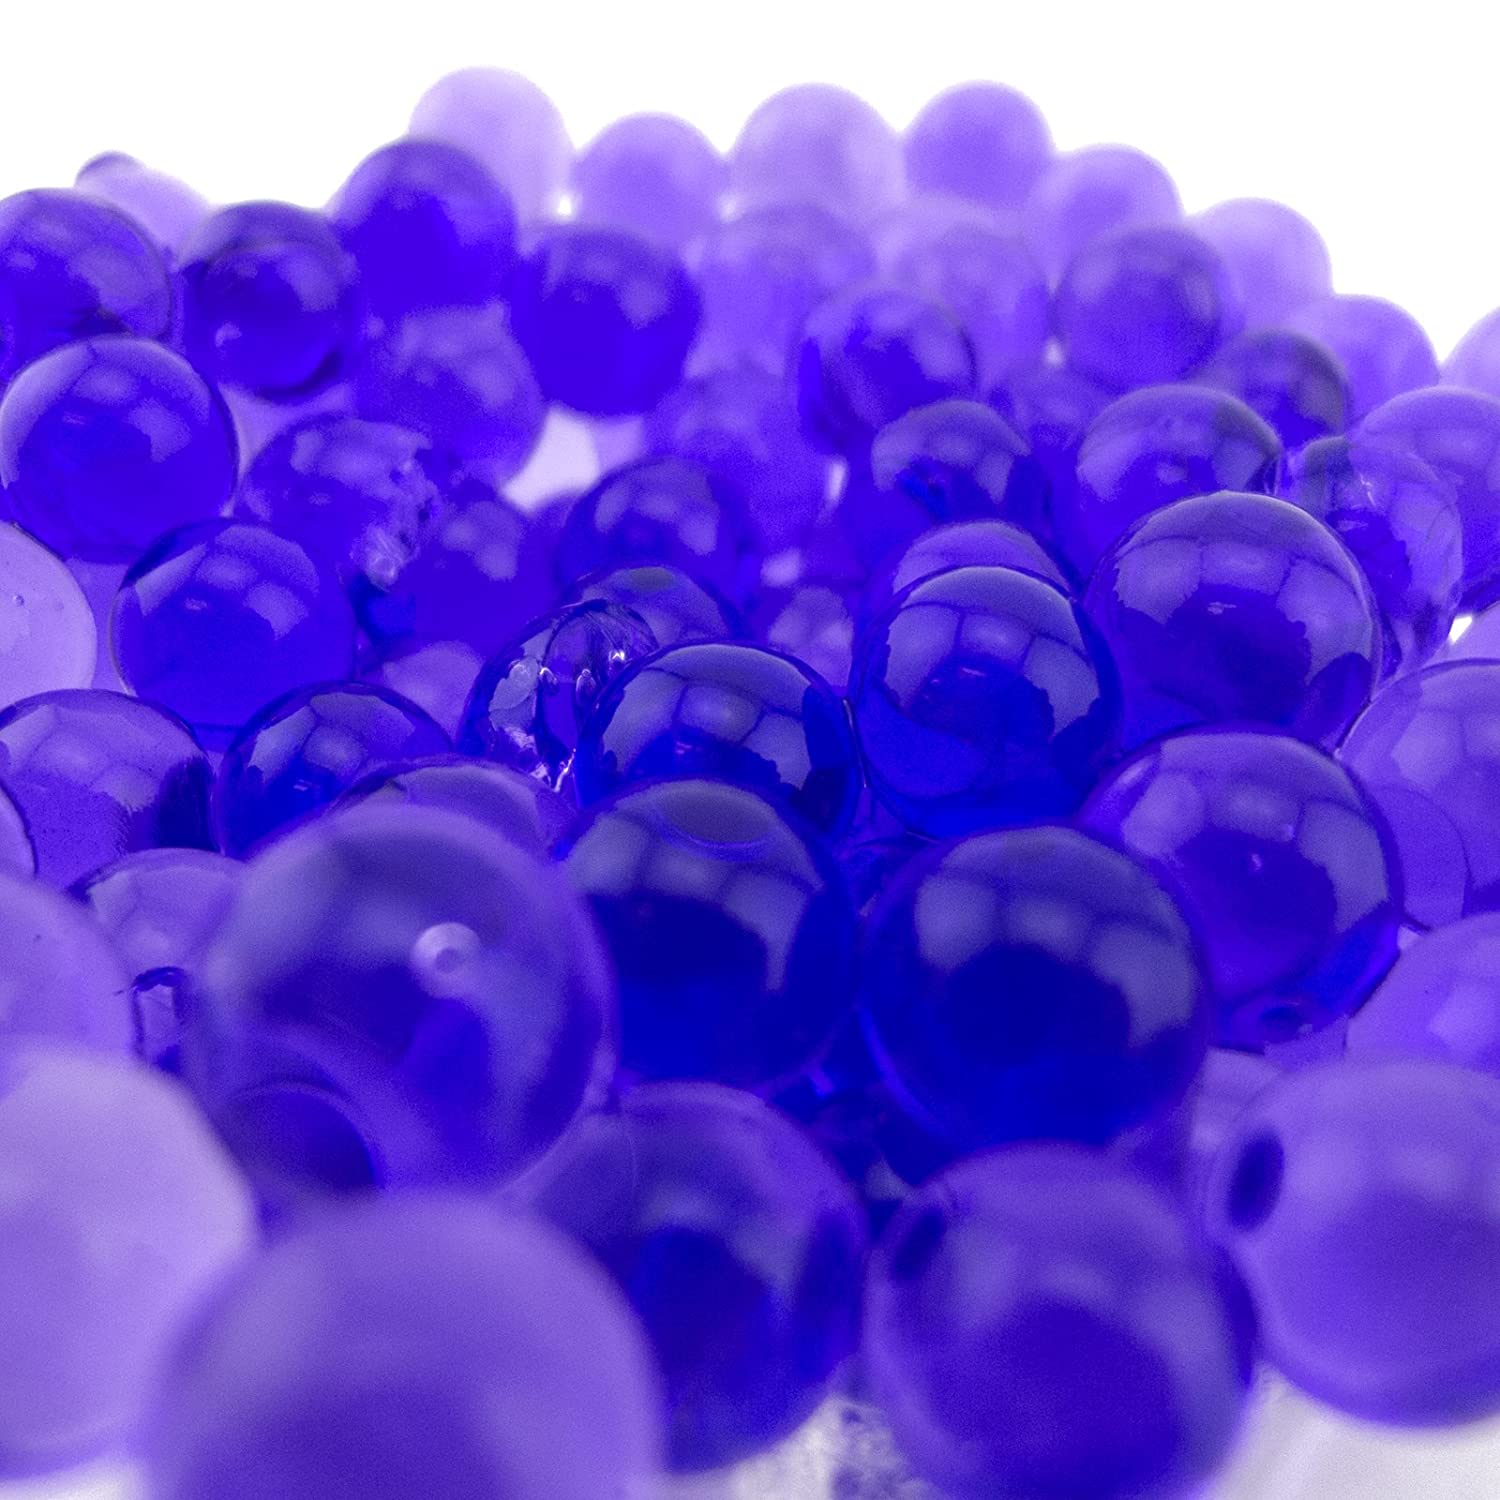 Amazon jellybeadz party planner purple 1 pound bag water amazon jellybeadz party planner purple 1 pound bag water beads pearls used for weddings and centerpieces purple home kitchen reviewsmspy